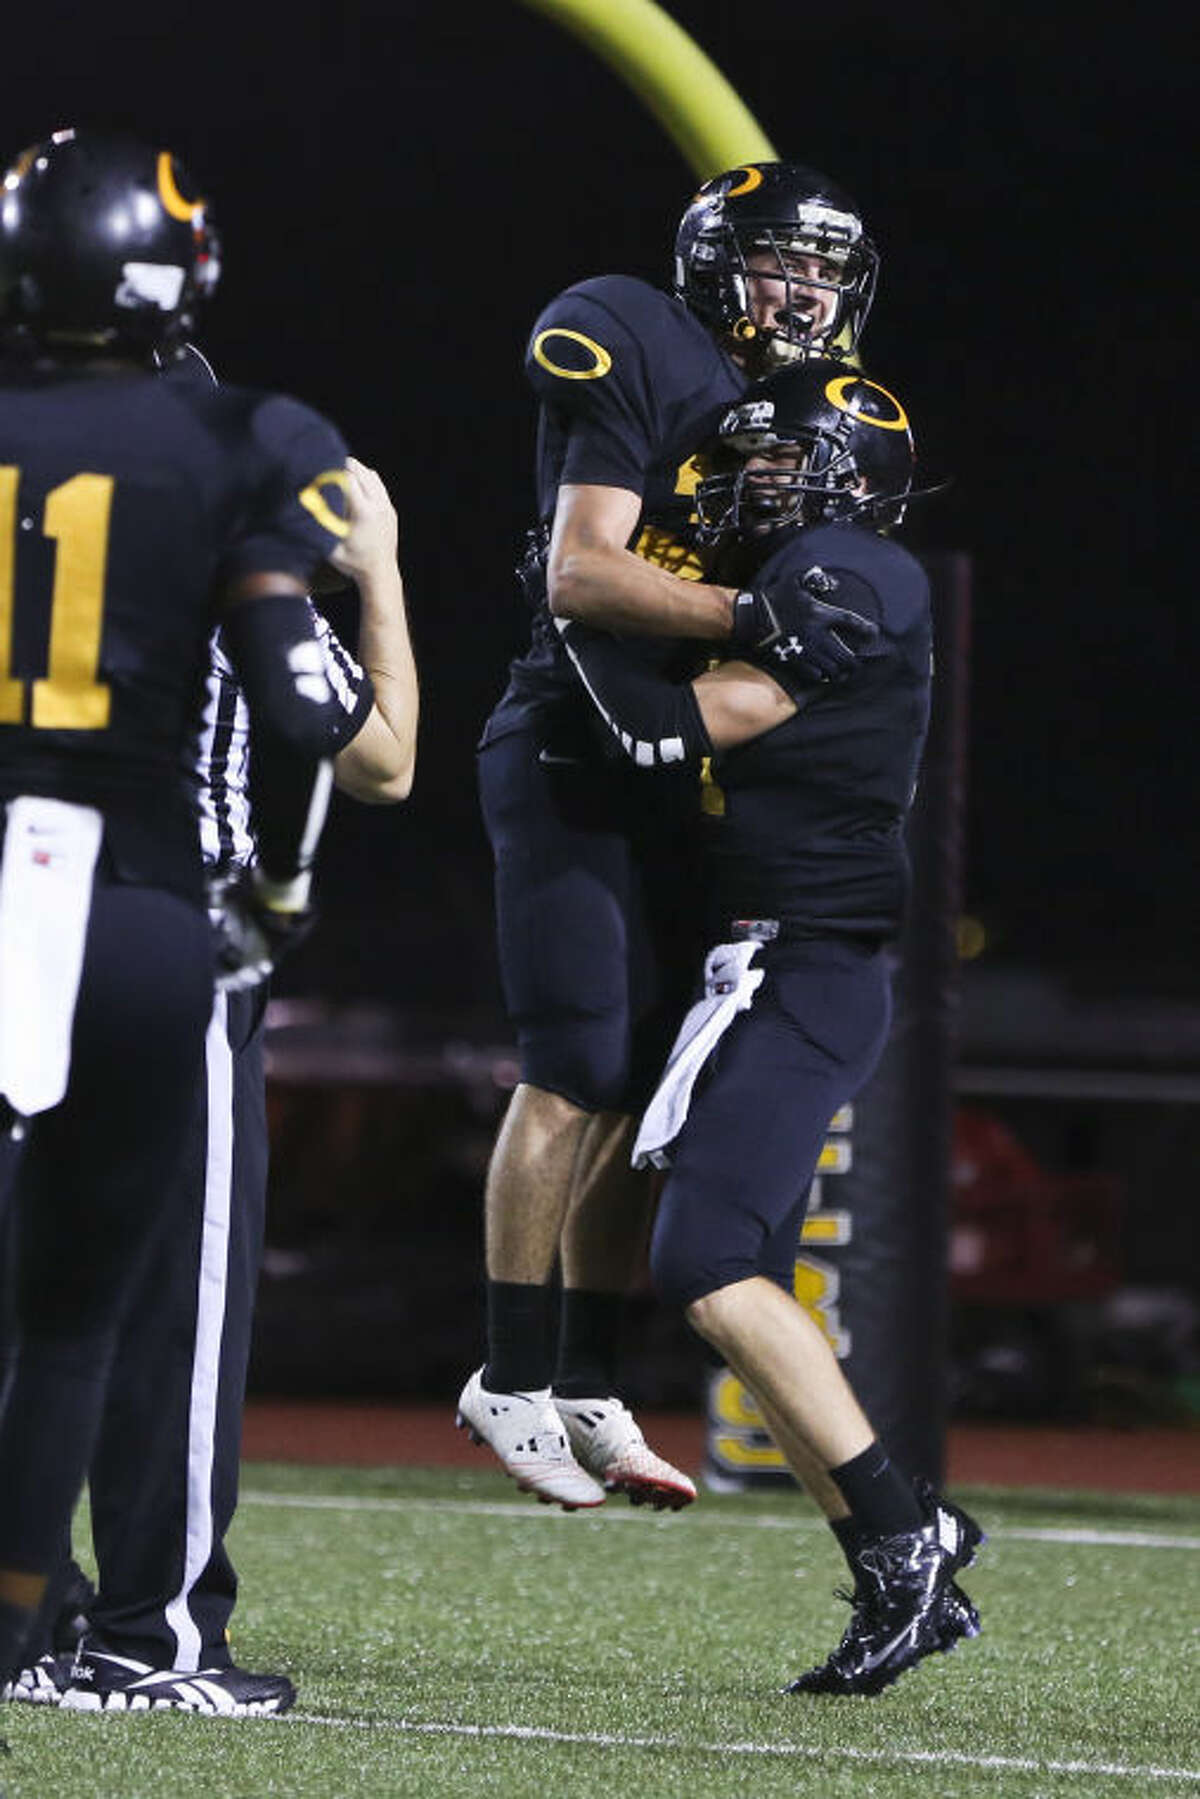 Klein Oak Panthers celebrate after scoring a touchdown during the game against Spring on Friday at Klein Memorial Stadium. To view or purchase this photo and others like it, go to HCNPics.com. (Michael Minasi / HCN)